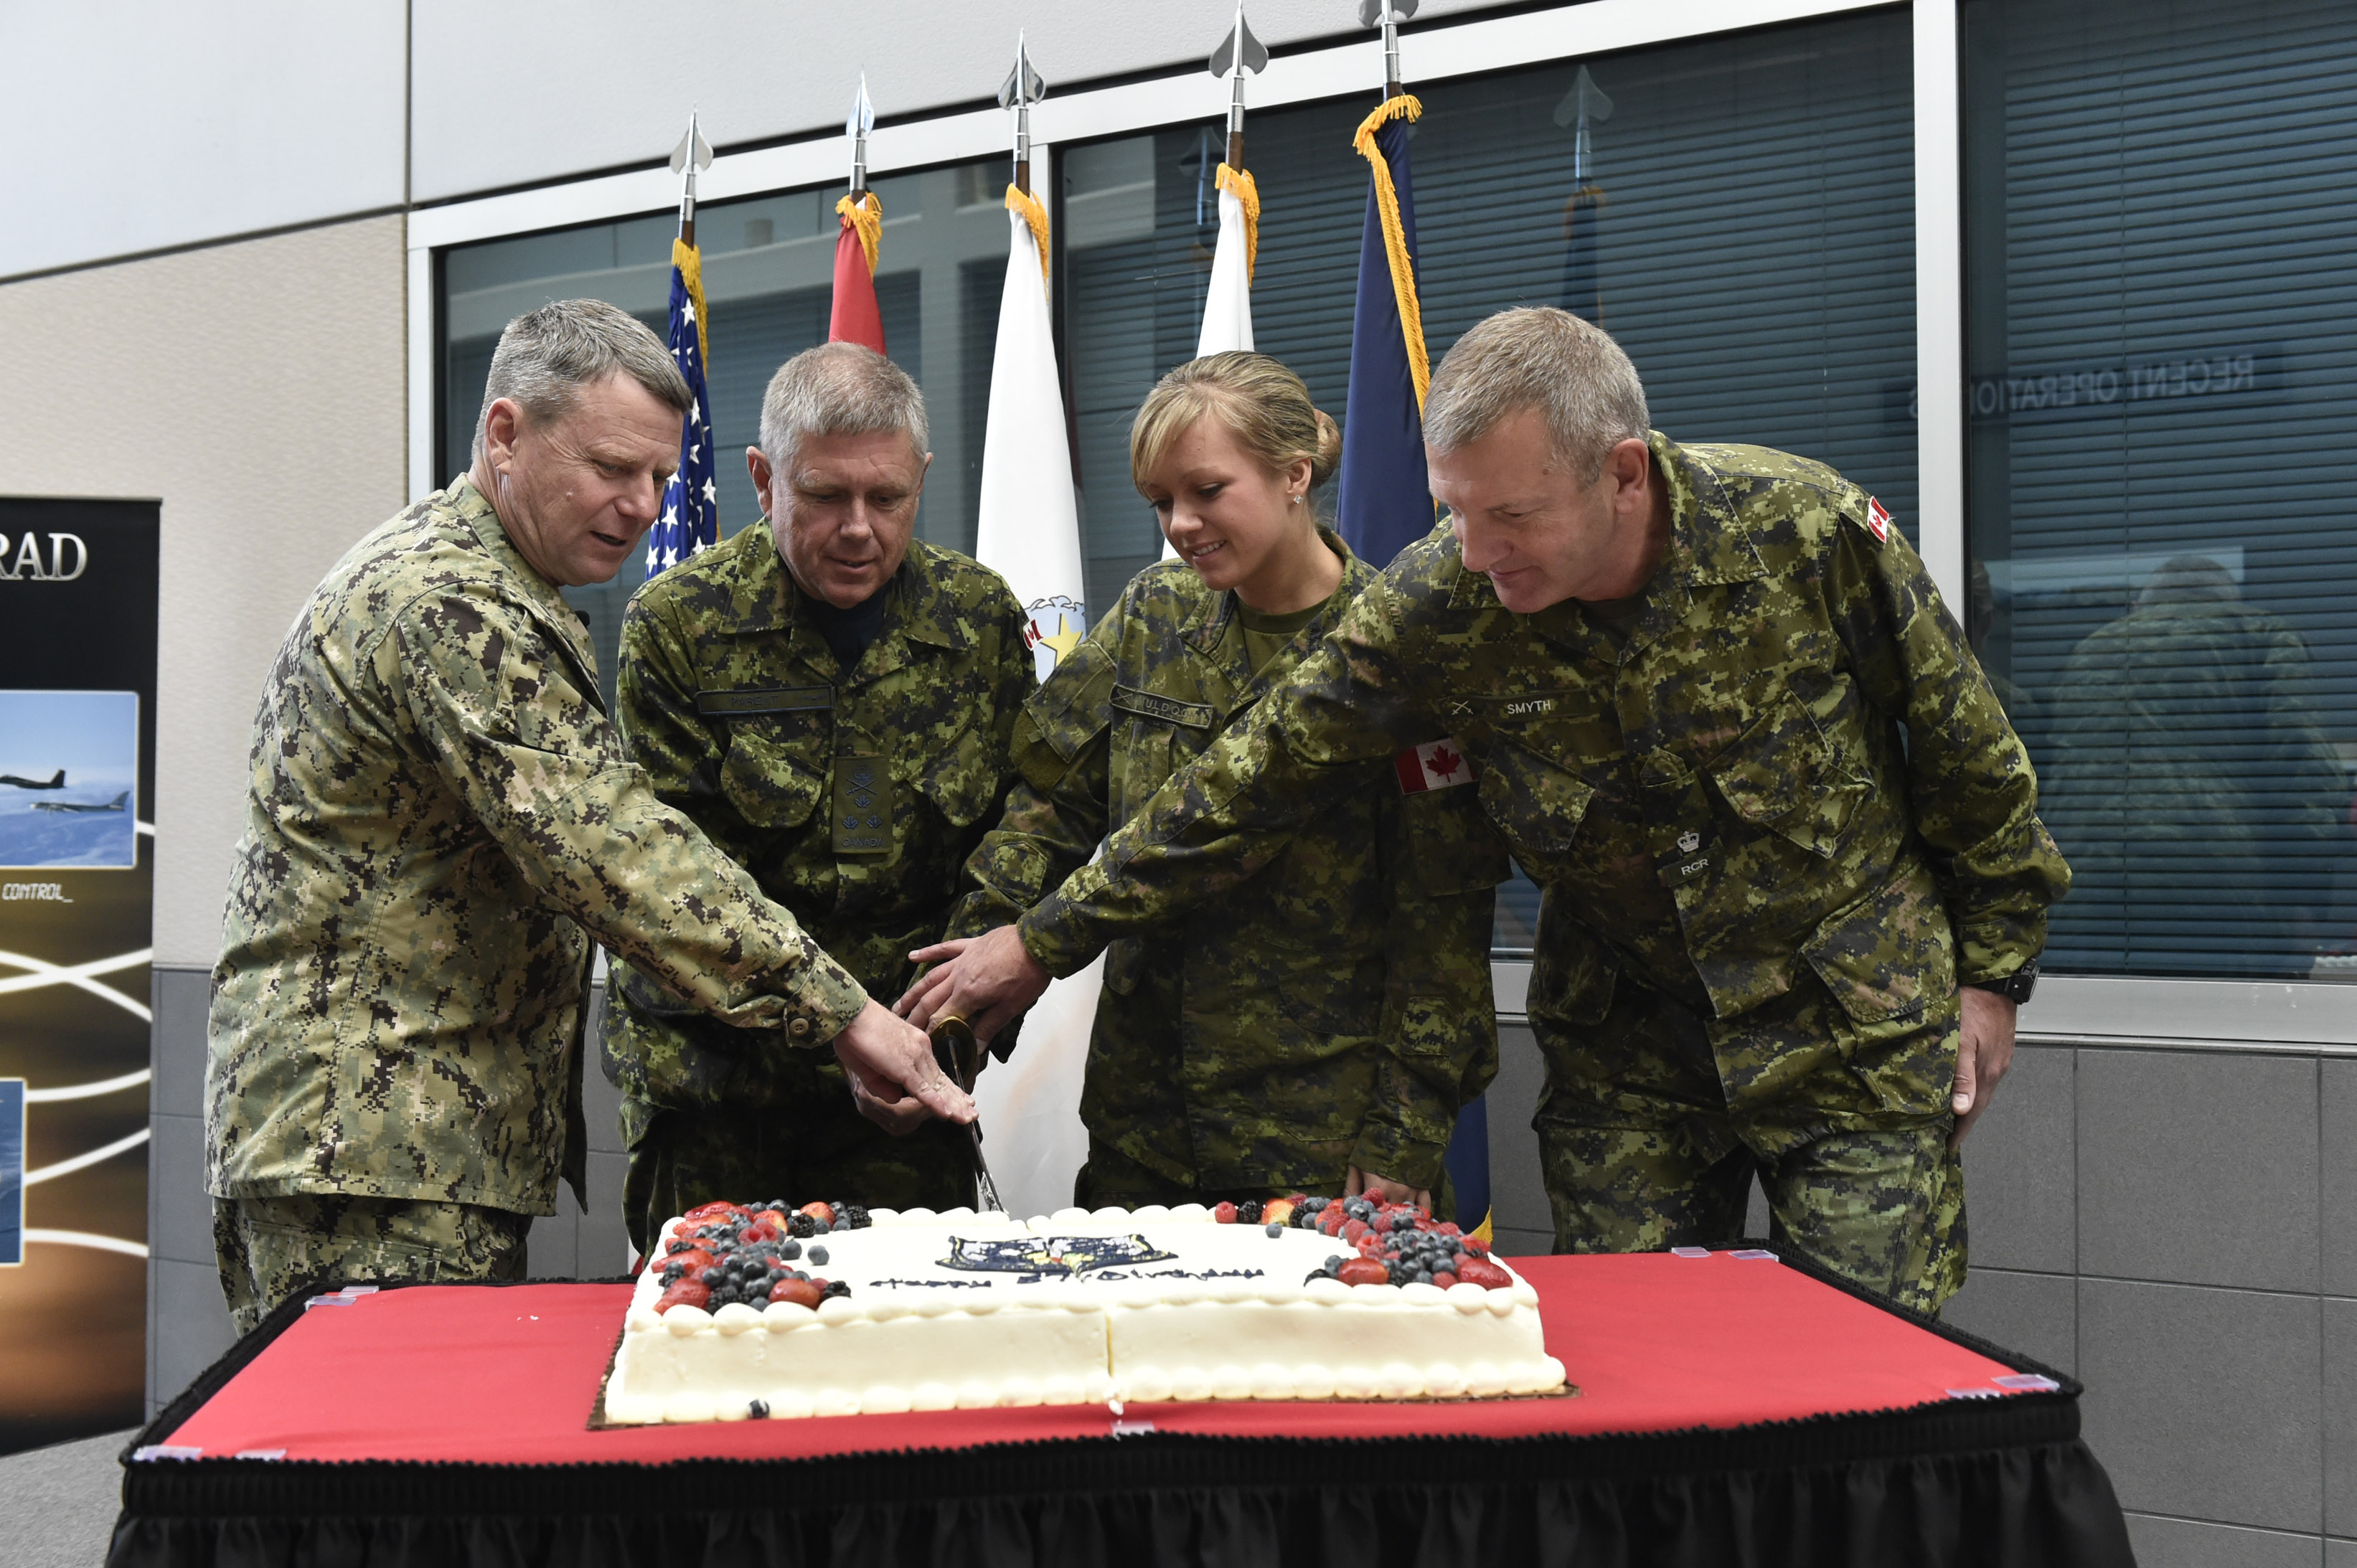 Norad Celebrates 57 Years Peterson Air Force Base News Of The